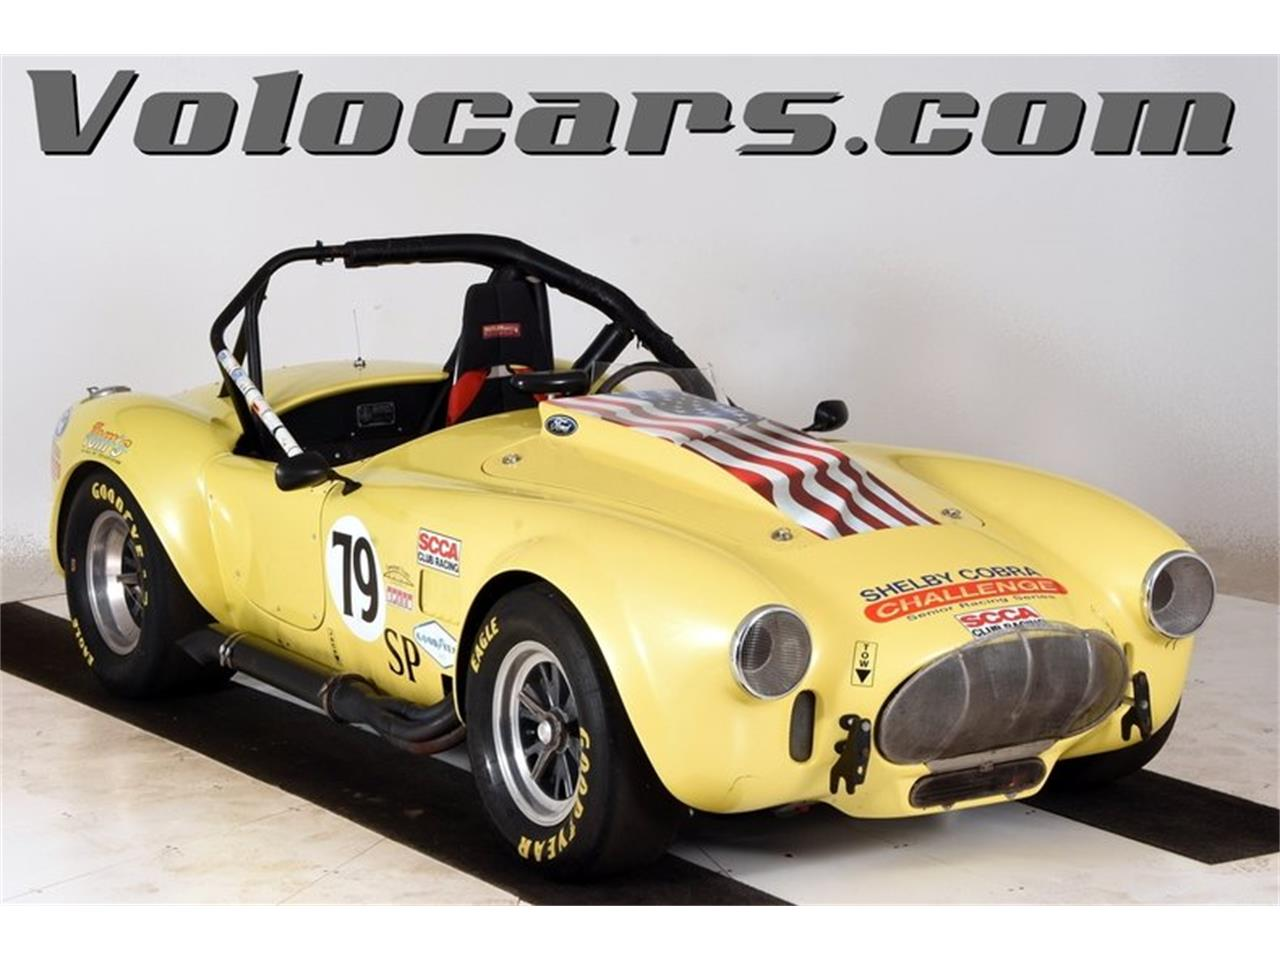 Large picture of classic 1965 cobra 112998 00 offered by volo auto museum ocxx